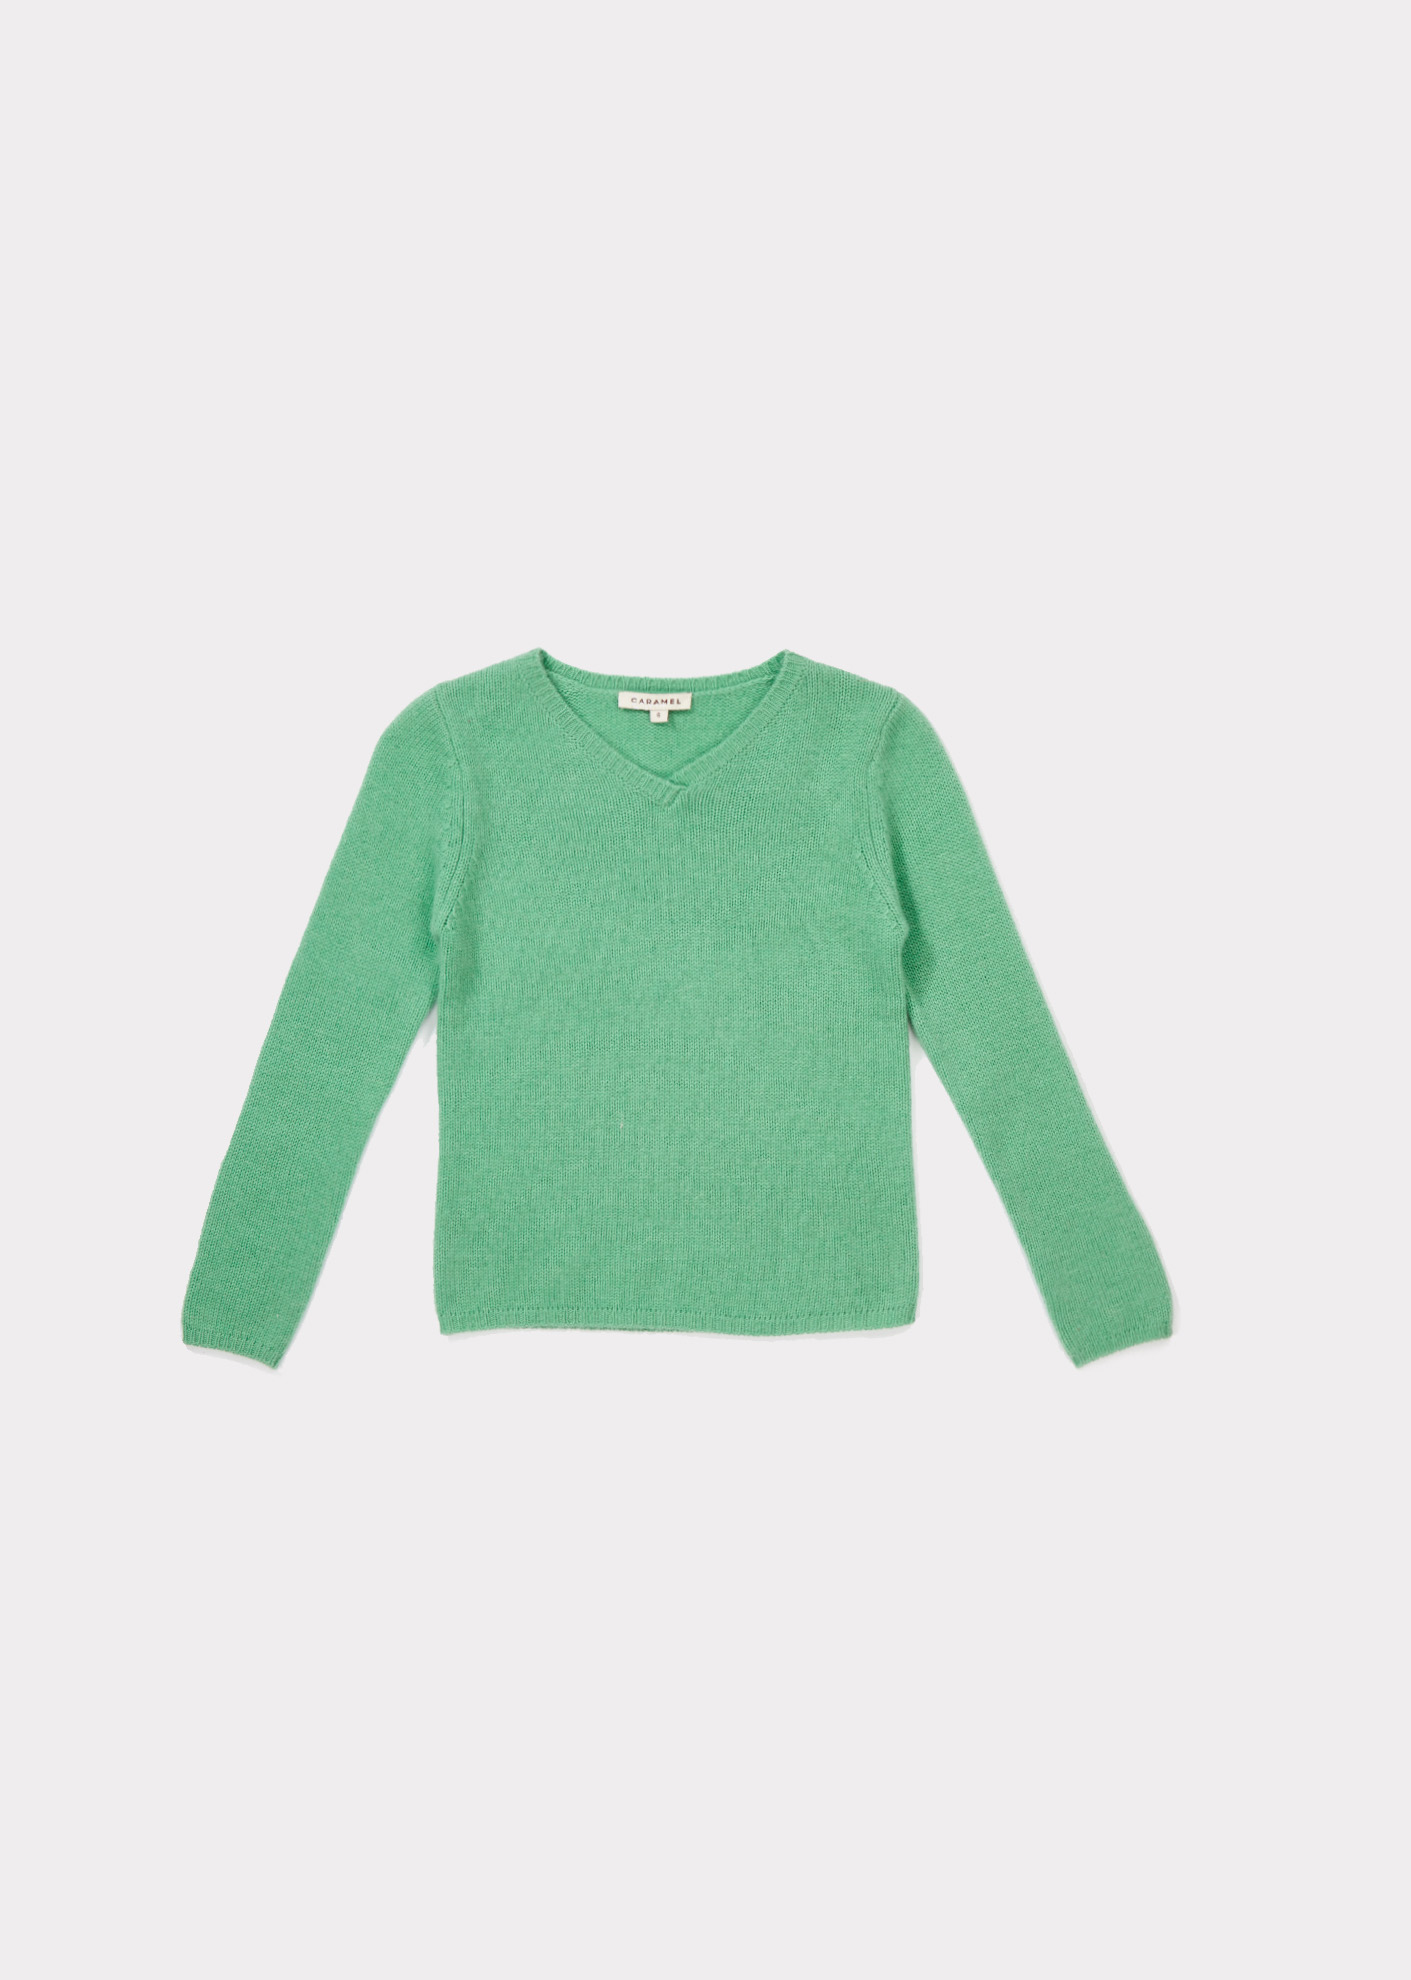 Caramel  - LANYER JUMPER MINT - Clothing